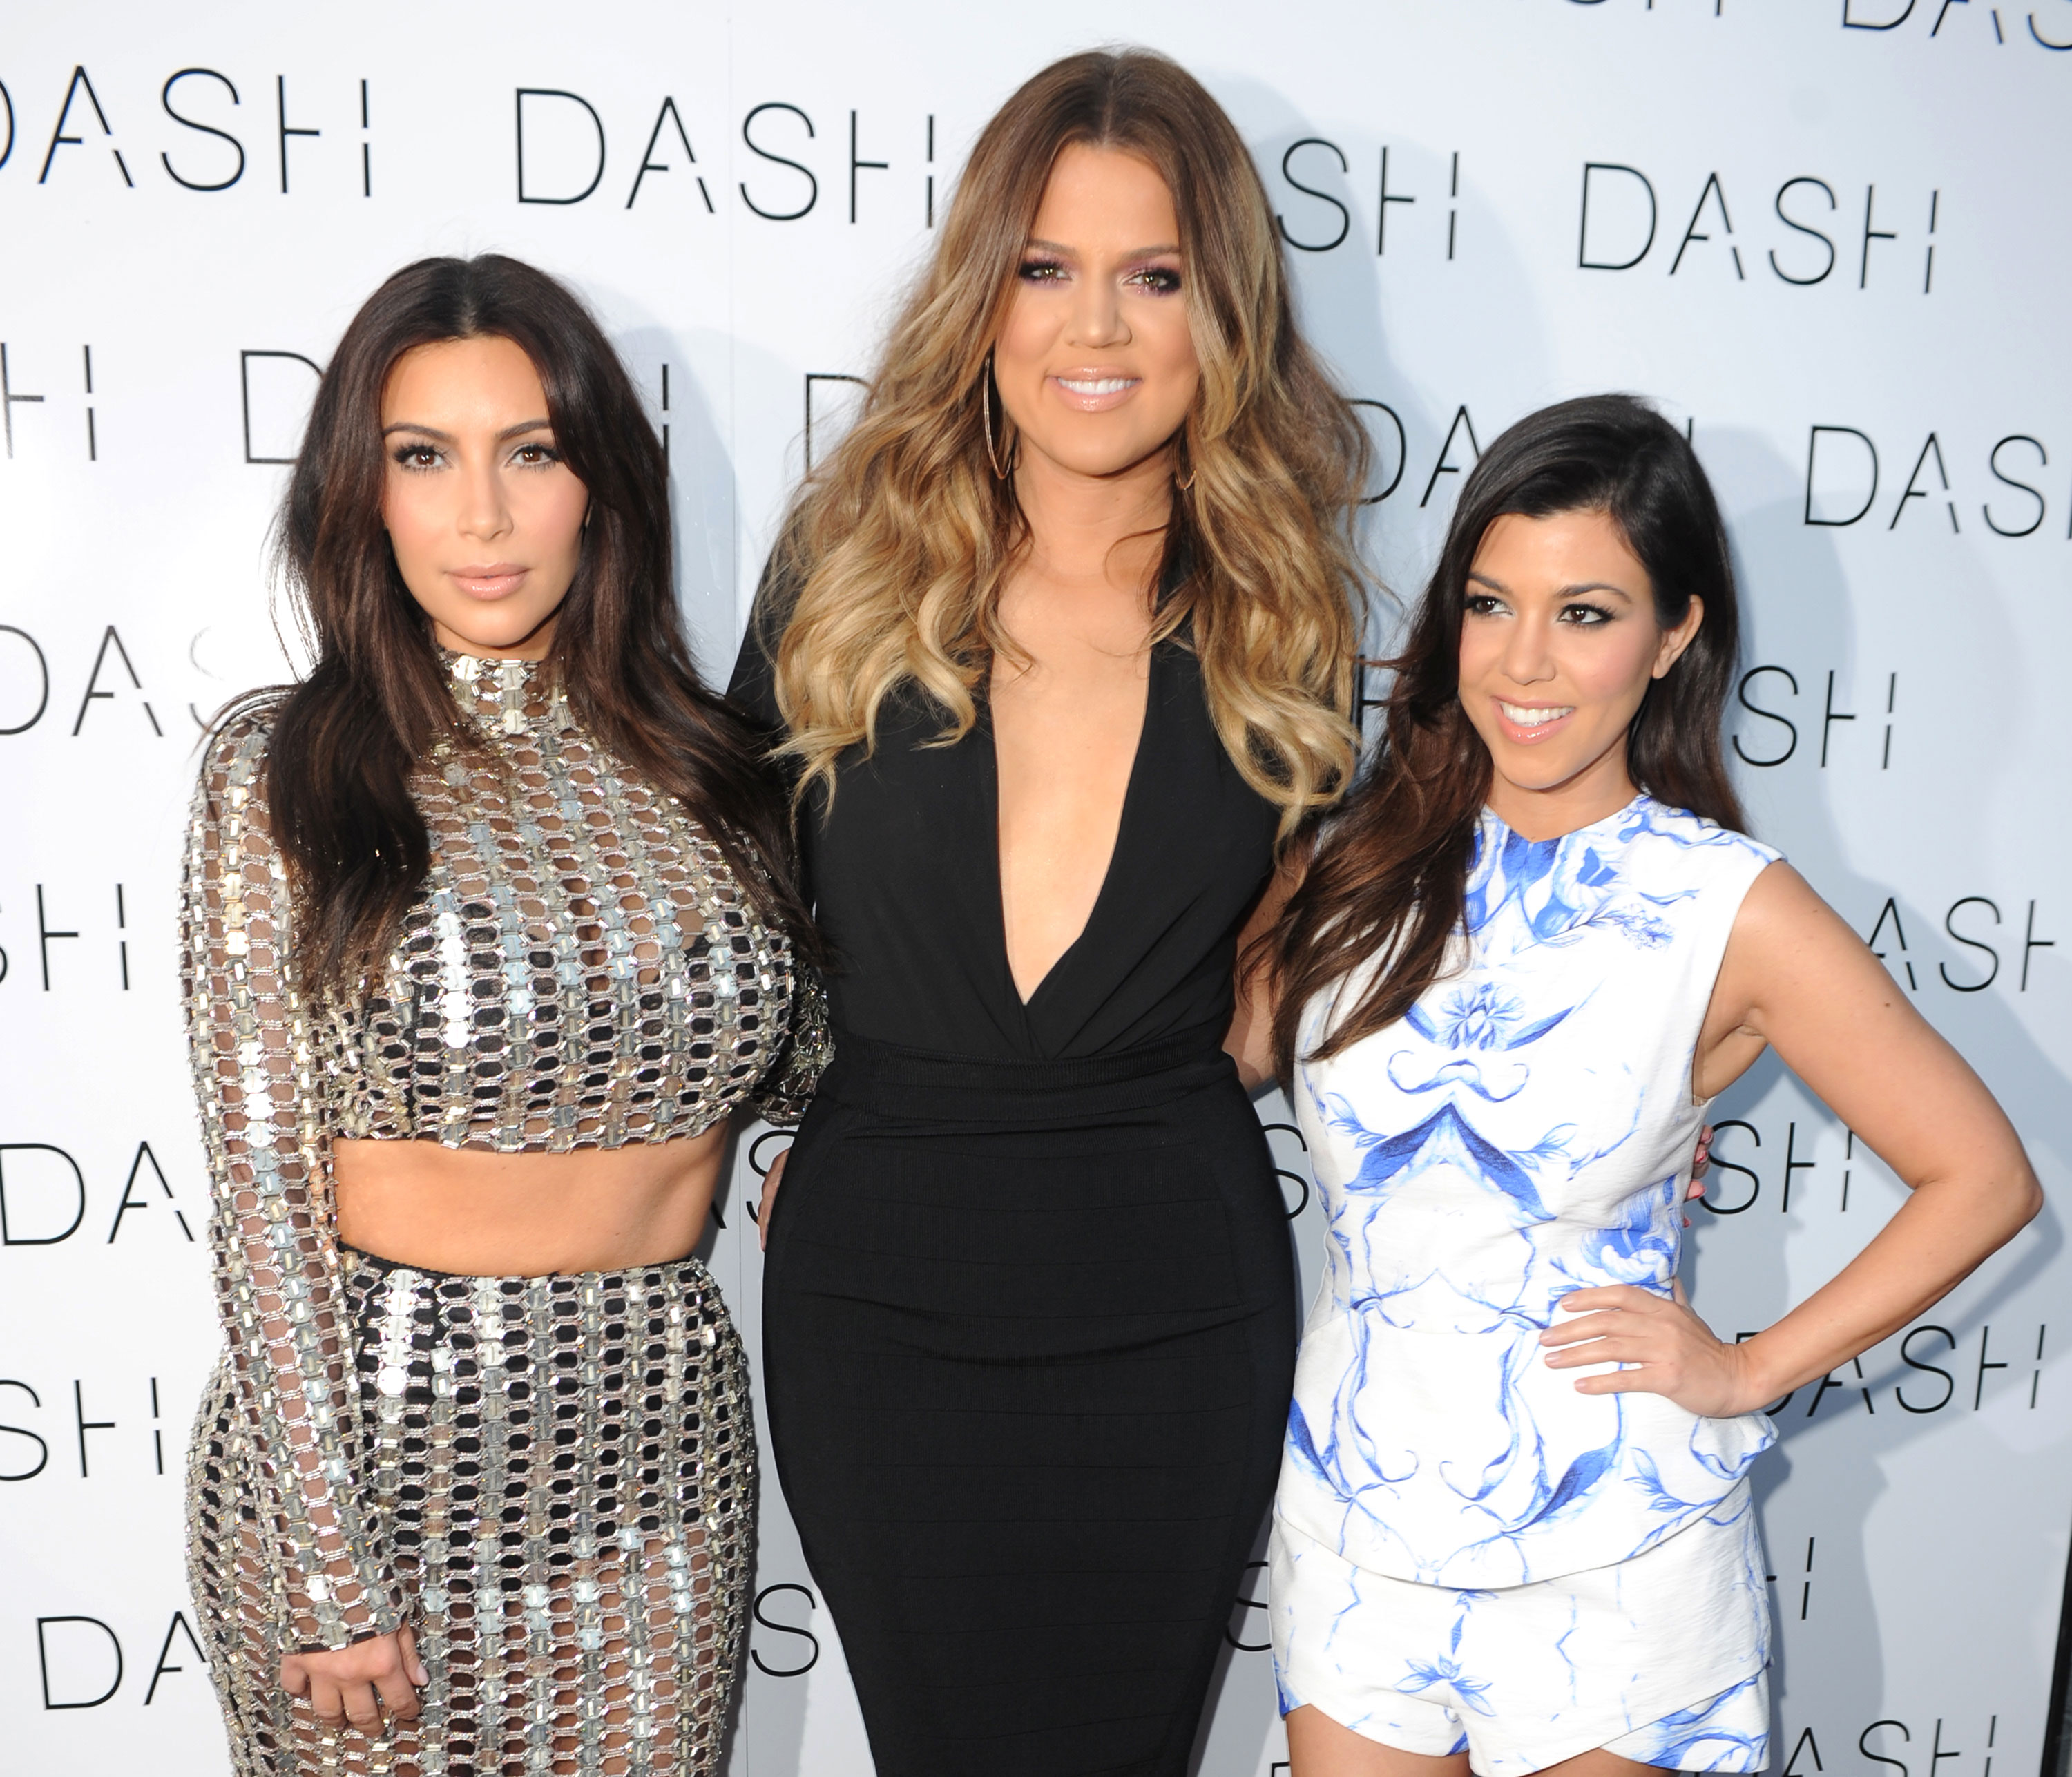 The Kardashians are closing all DASH stores for good pics